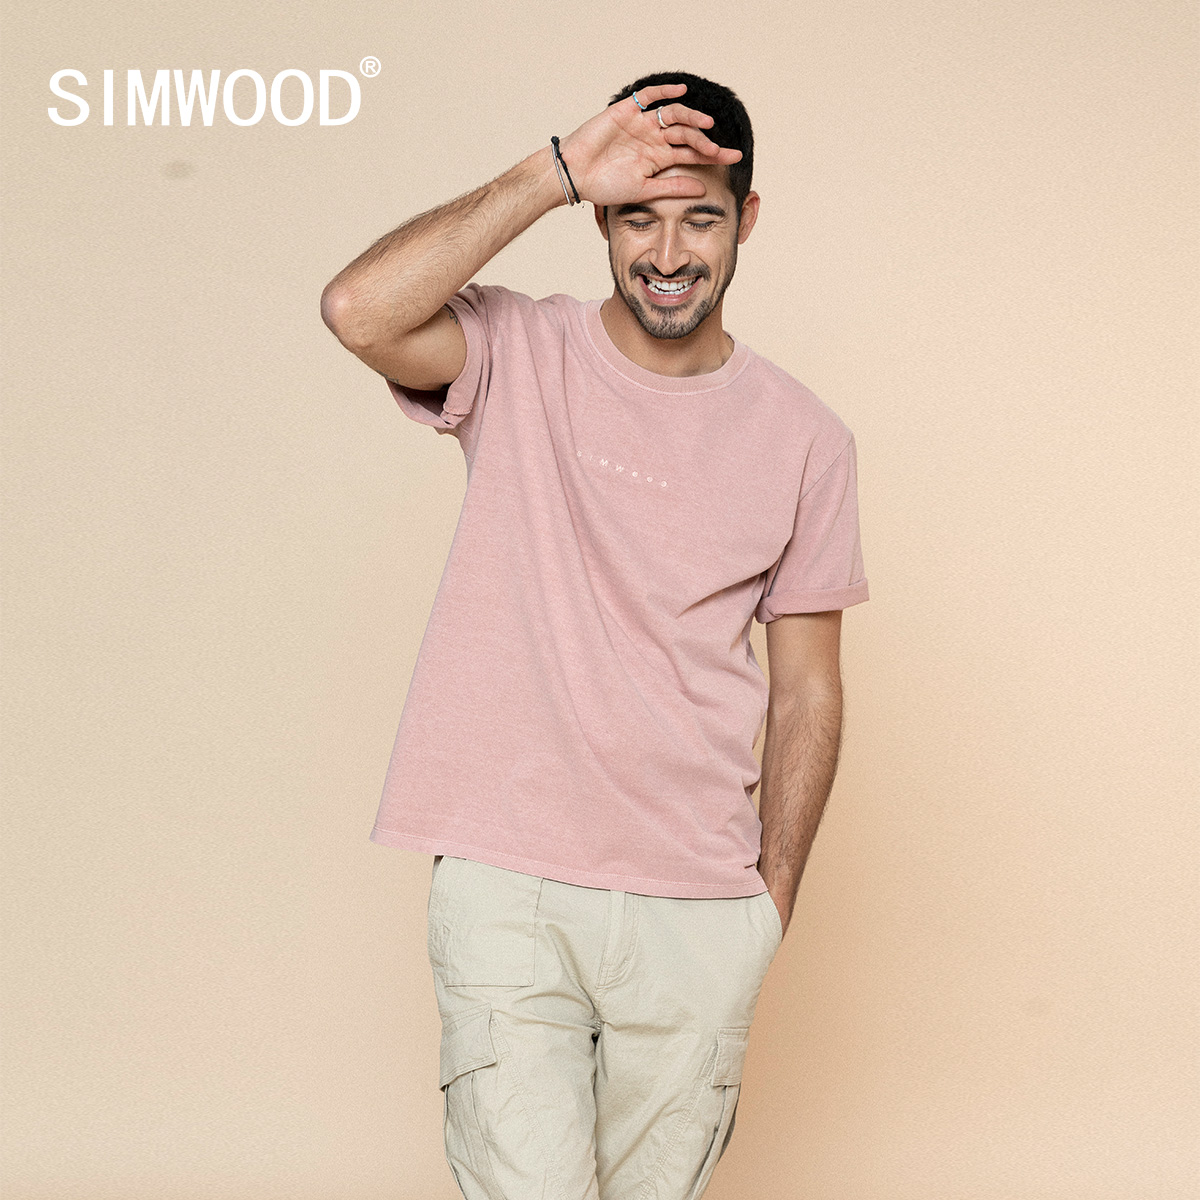 SIMWOOD 2020 Summer New Garment-Dyed Cotton T-Shirts Men Fashion Embroidery Letter Vintage T Shirts Plus Size Tops SJ130305